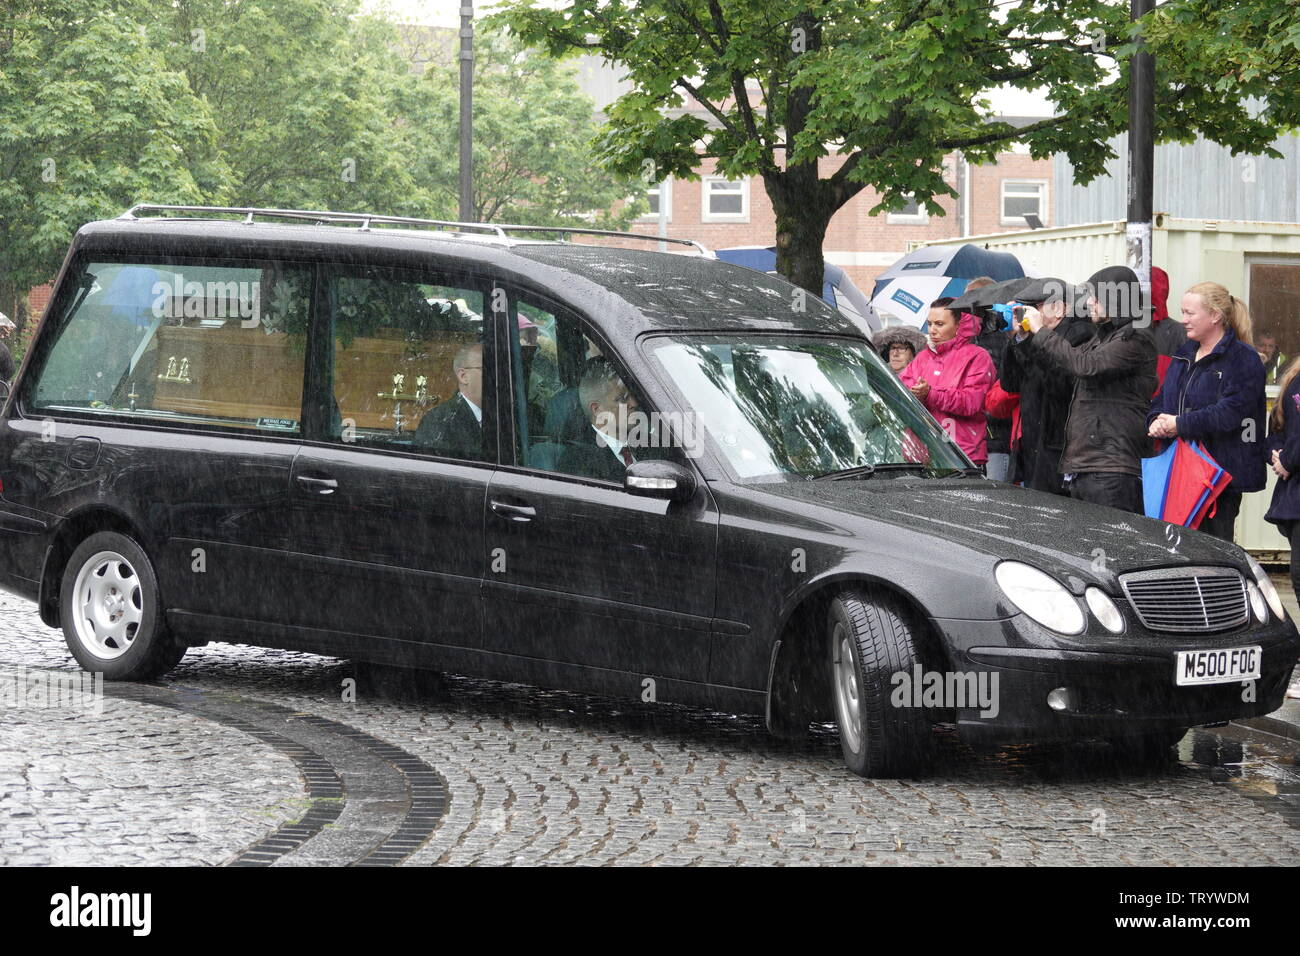 Prescot, Merseyside, UK. June 13th 2019.  Family, friends and celebrities pay their respects at the funeral service of Liverpool born comedian Freddie Starr at Prescot Parish Church.  Freddie who was 76yrs old died after a heart attack at his Spanish home in the Costa Del Sol on May 9th.  Freddie rose to fame in the 1970s, after appearing on Opportunity Knocks TV show.  Later, in the 1990s, Freddie starred in several television shows including An Audience with Freddie Starr before presenting game show, Beat the Crusher. Credit: Ken Biggs/Alamy Live News. - Stock Image